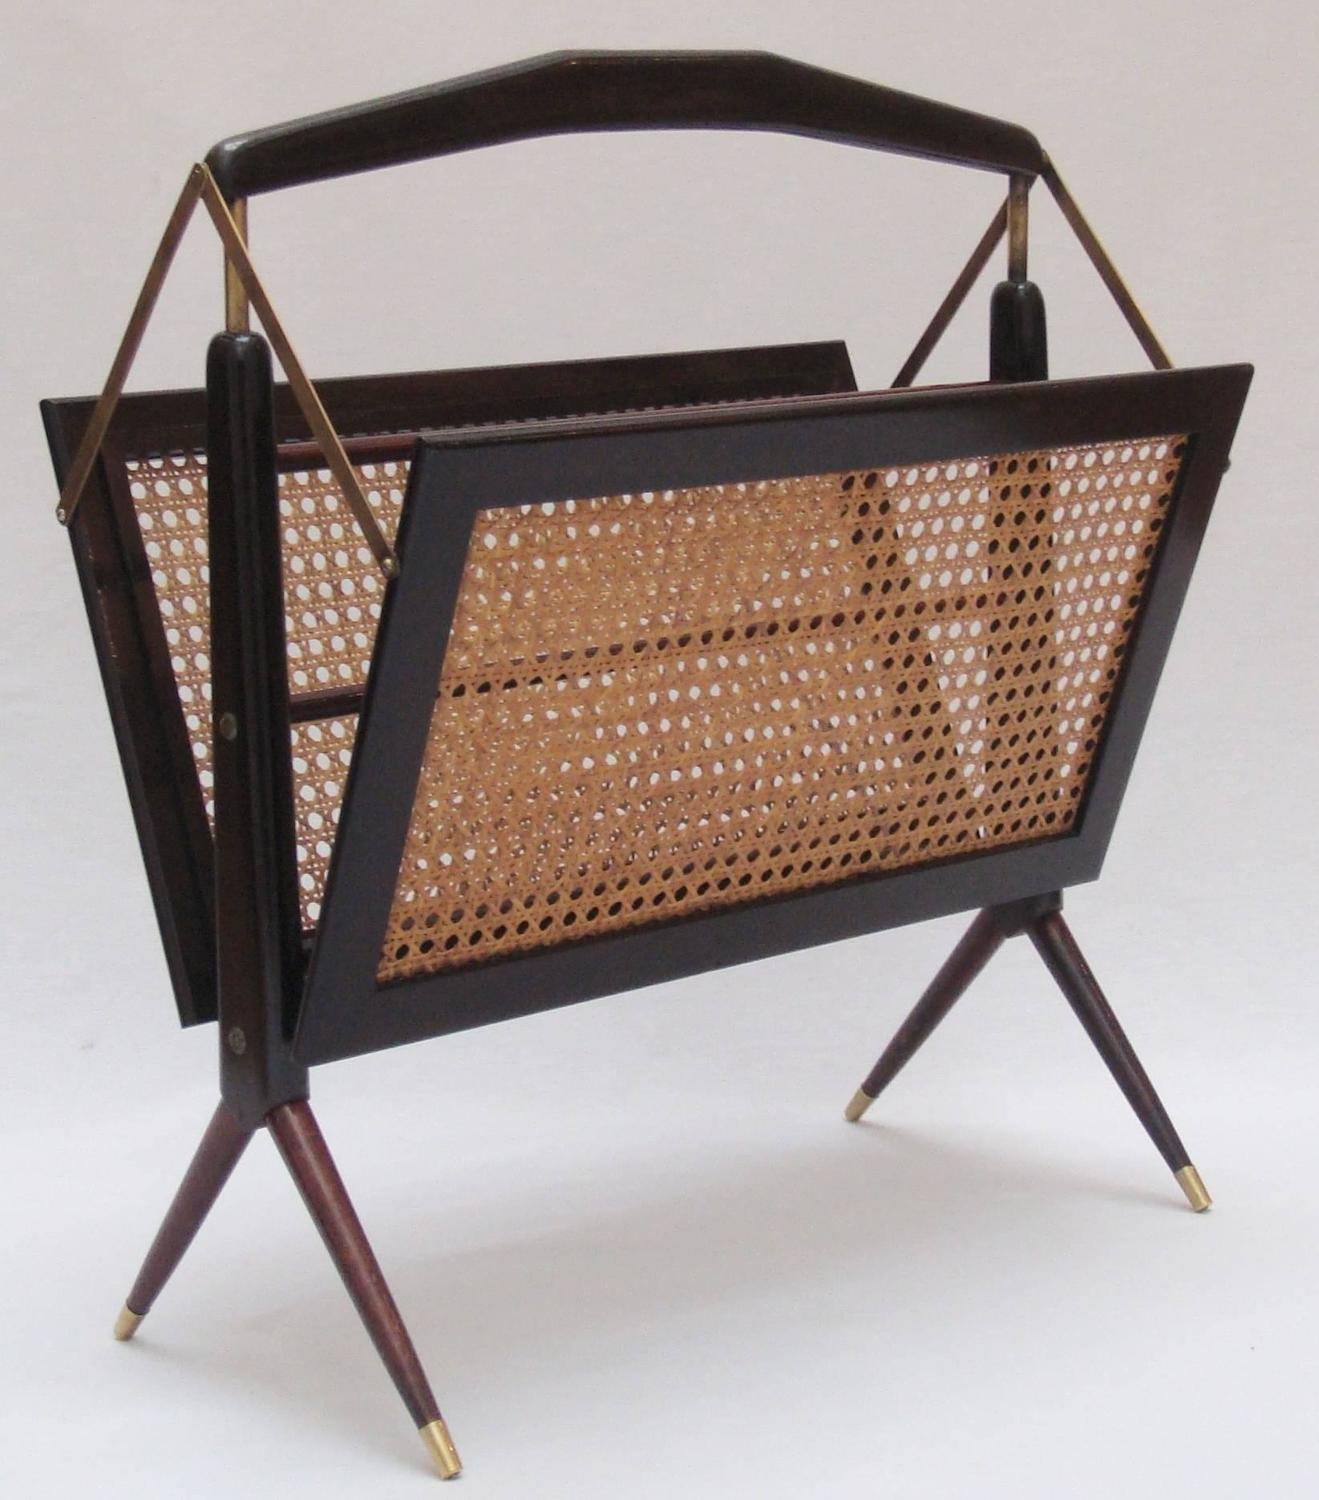 Ico parisi wooden and rattan magazine rack  1950